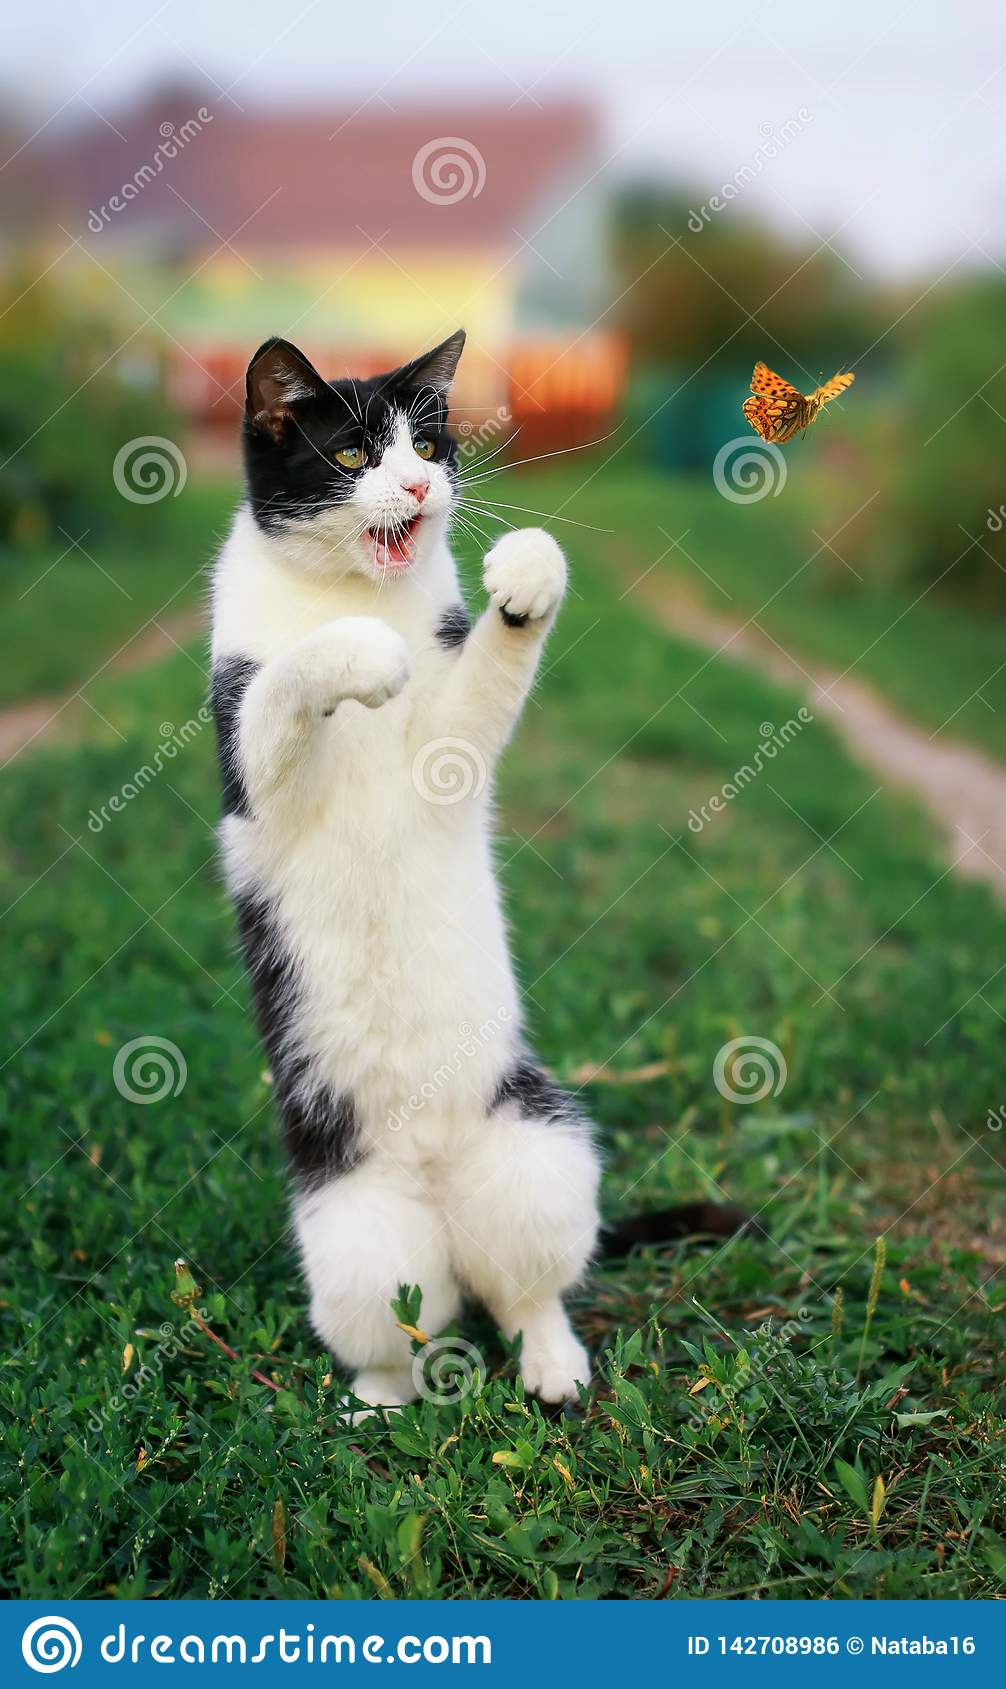 funny kitten in a summer sunny garden catches a flying orange butterfly jumping on its hind legs in clear weather in green